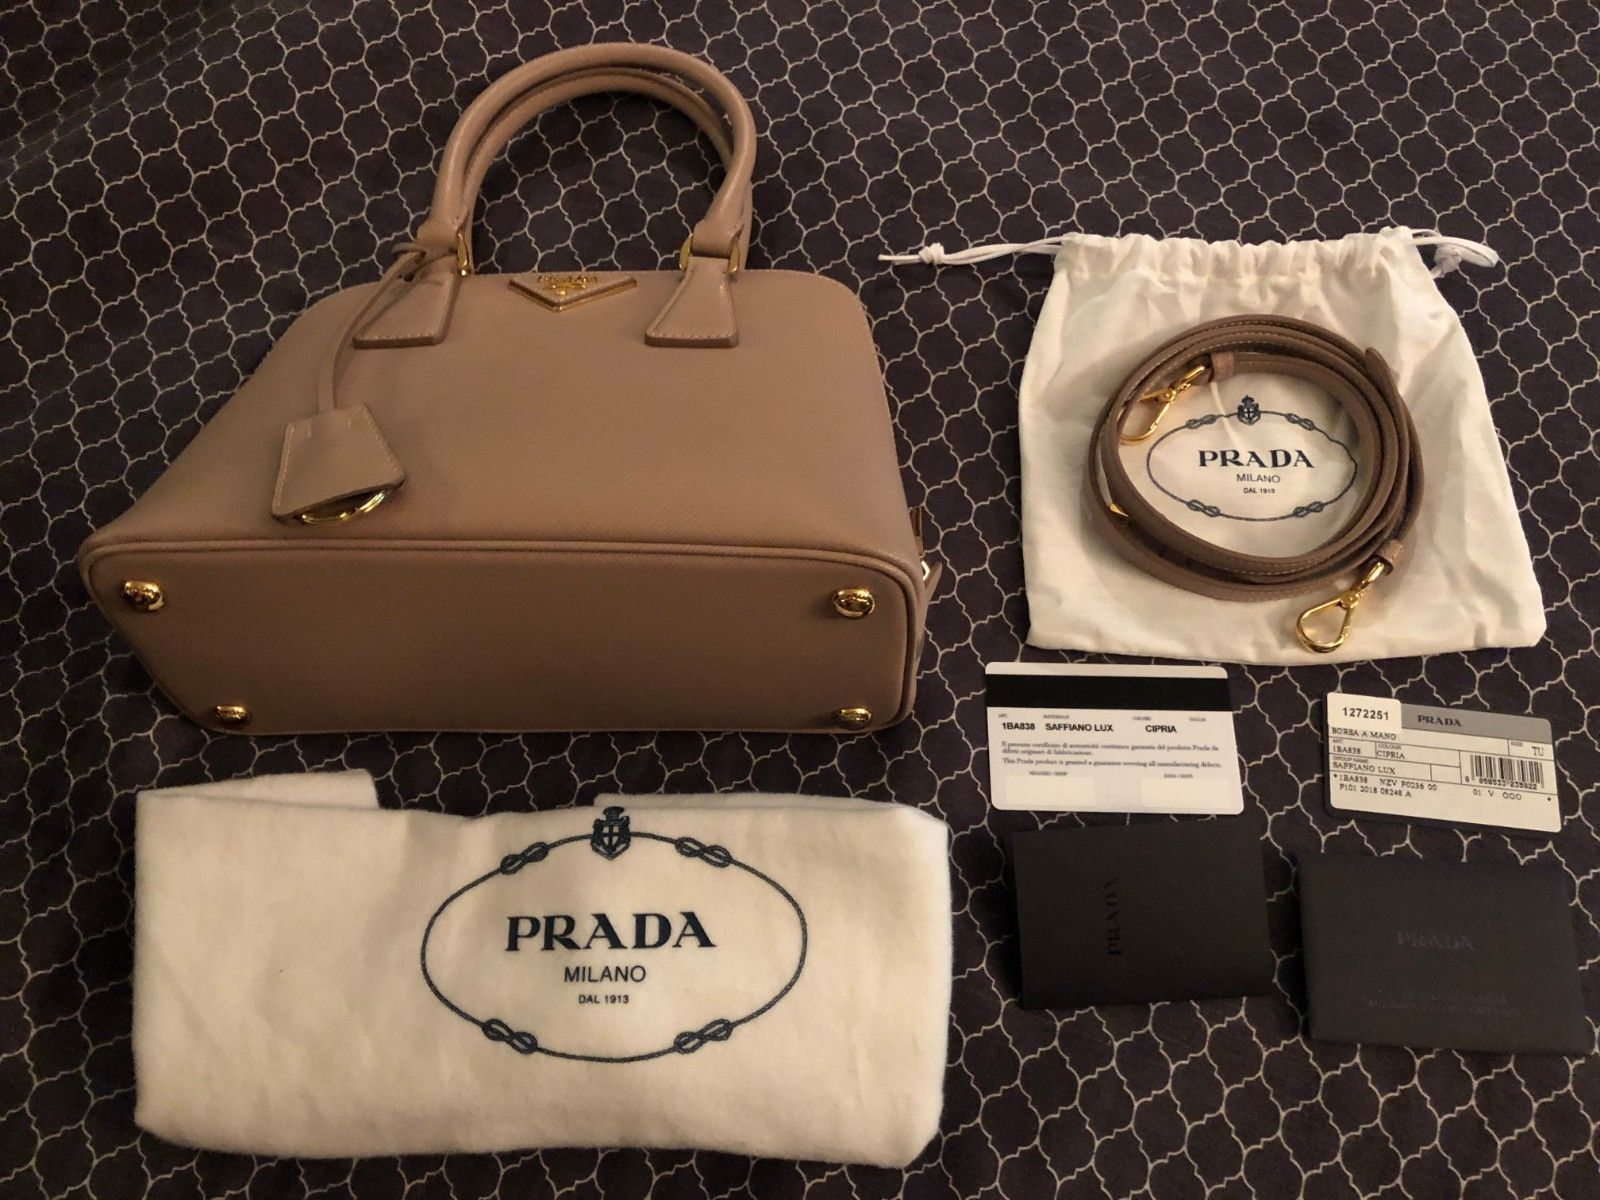 941303c5e633 Prada Lux Saffiano Leather Tote 1BA838 - Cipria /LIKE- CONDITION ...